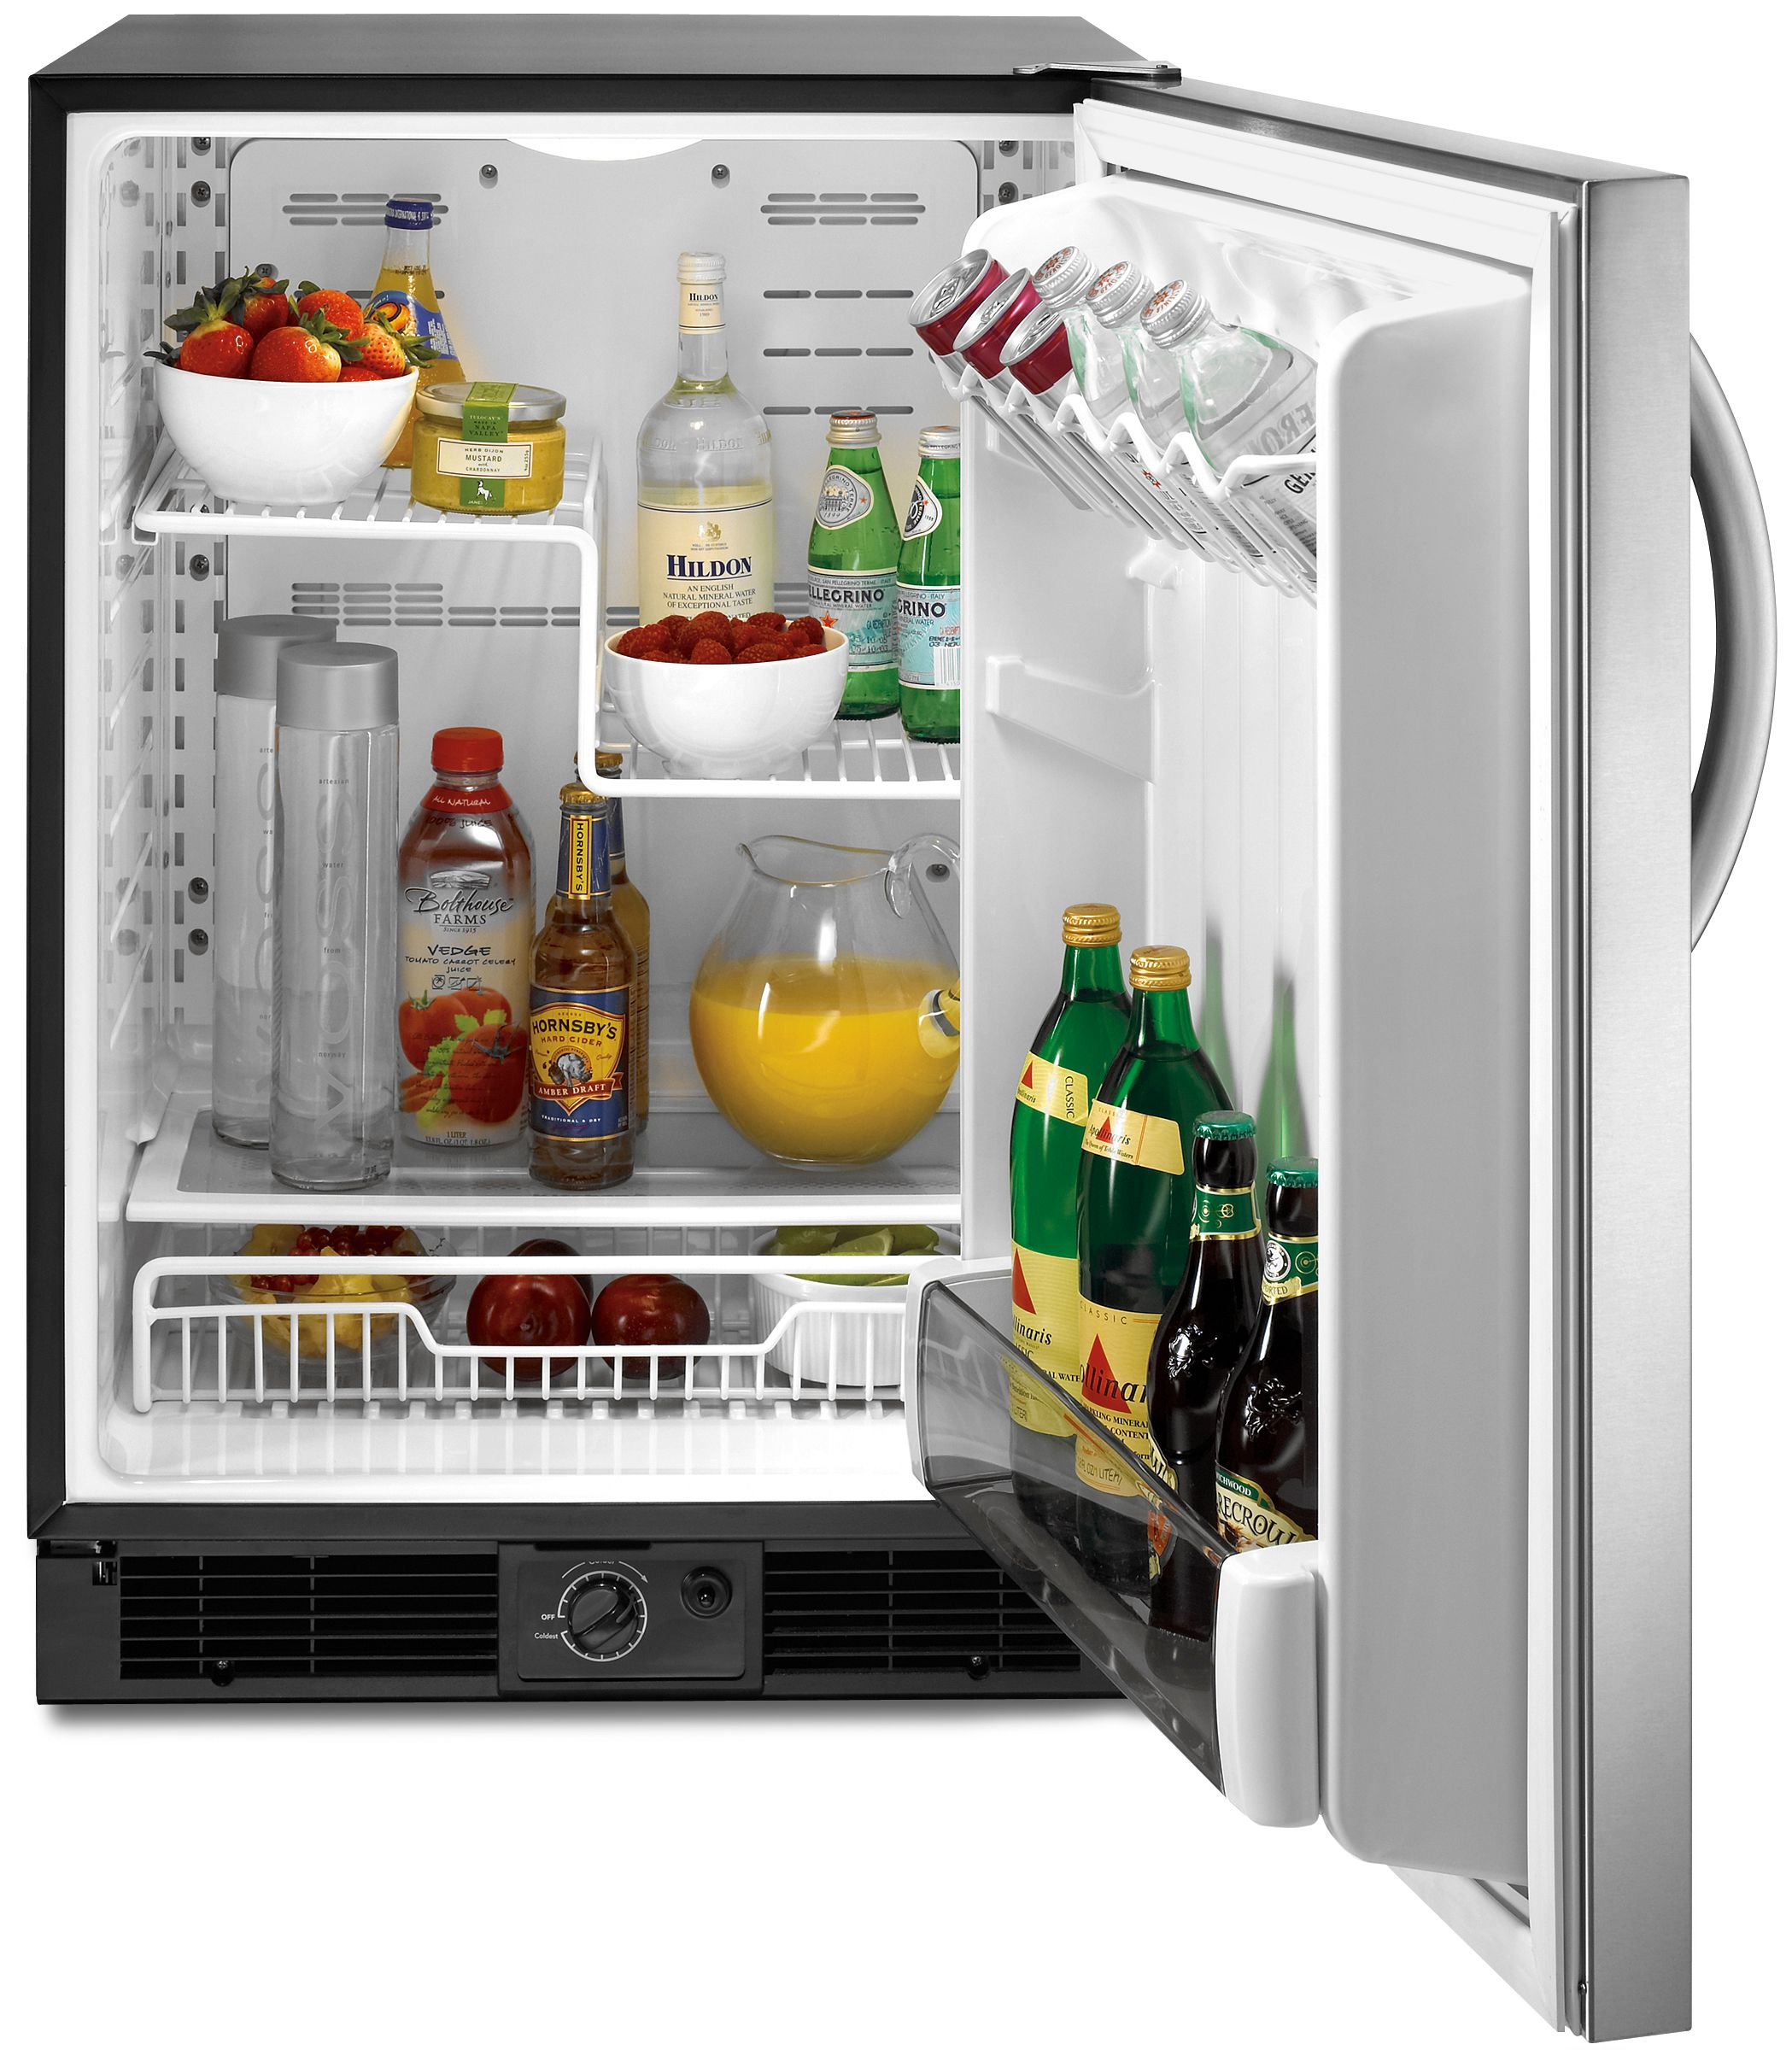 KitchenAid 5.7 cu. ft. Undercounter Refrigerator